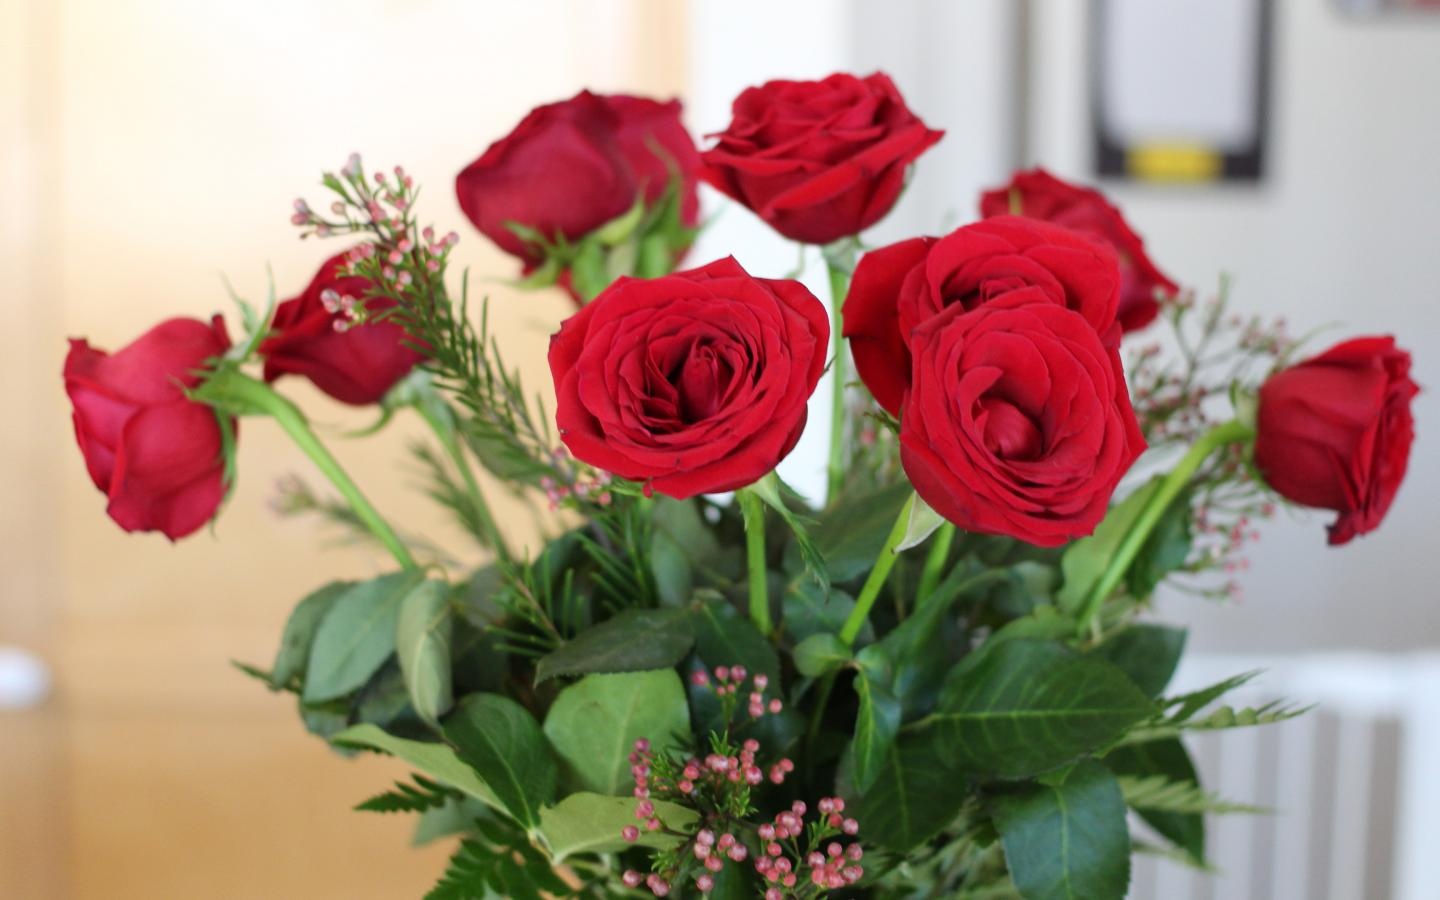 Pictures of 12 red roses as bouquet flower hd wallpapers - Bouquet of red roses hd images ...